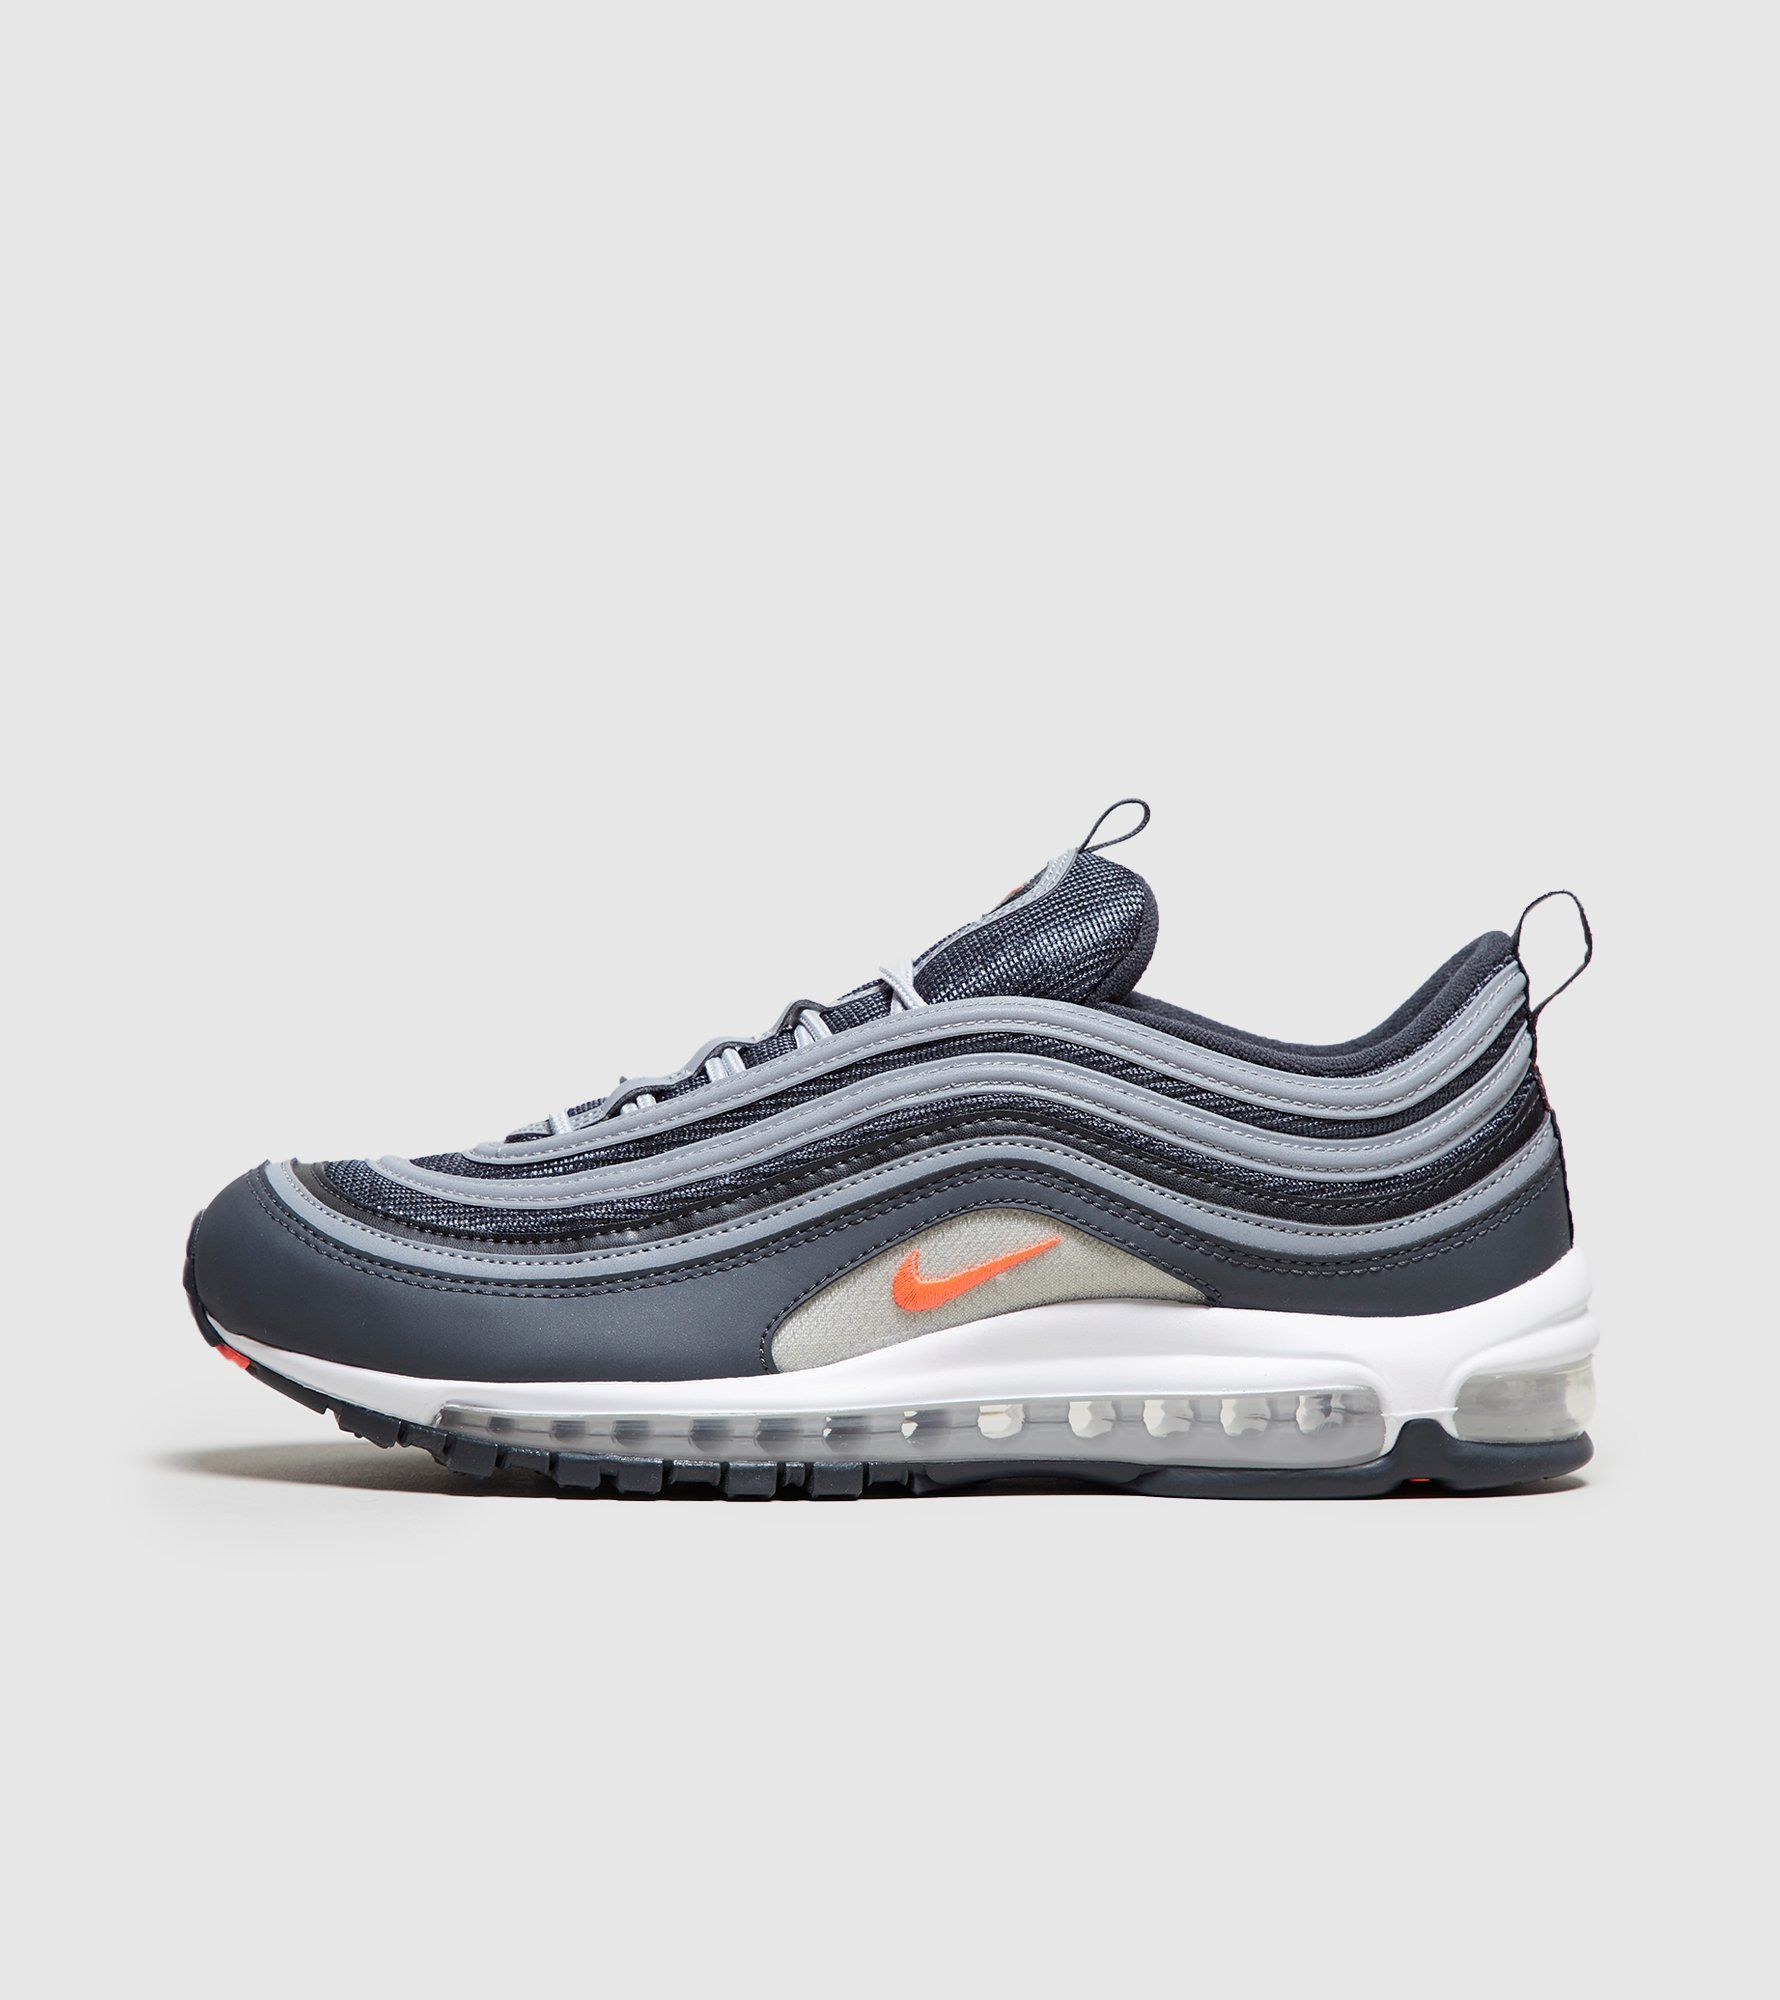 separation shoes 8edee 50f5f Nike Air Max 97 Essential   Size